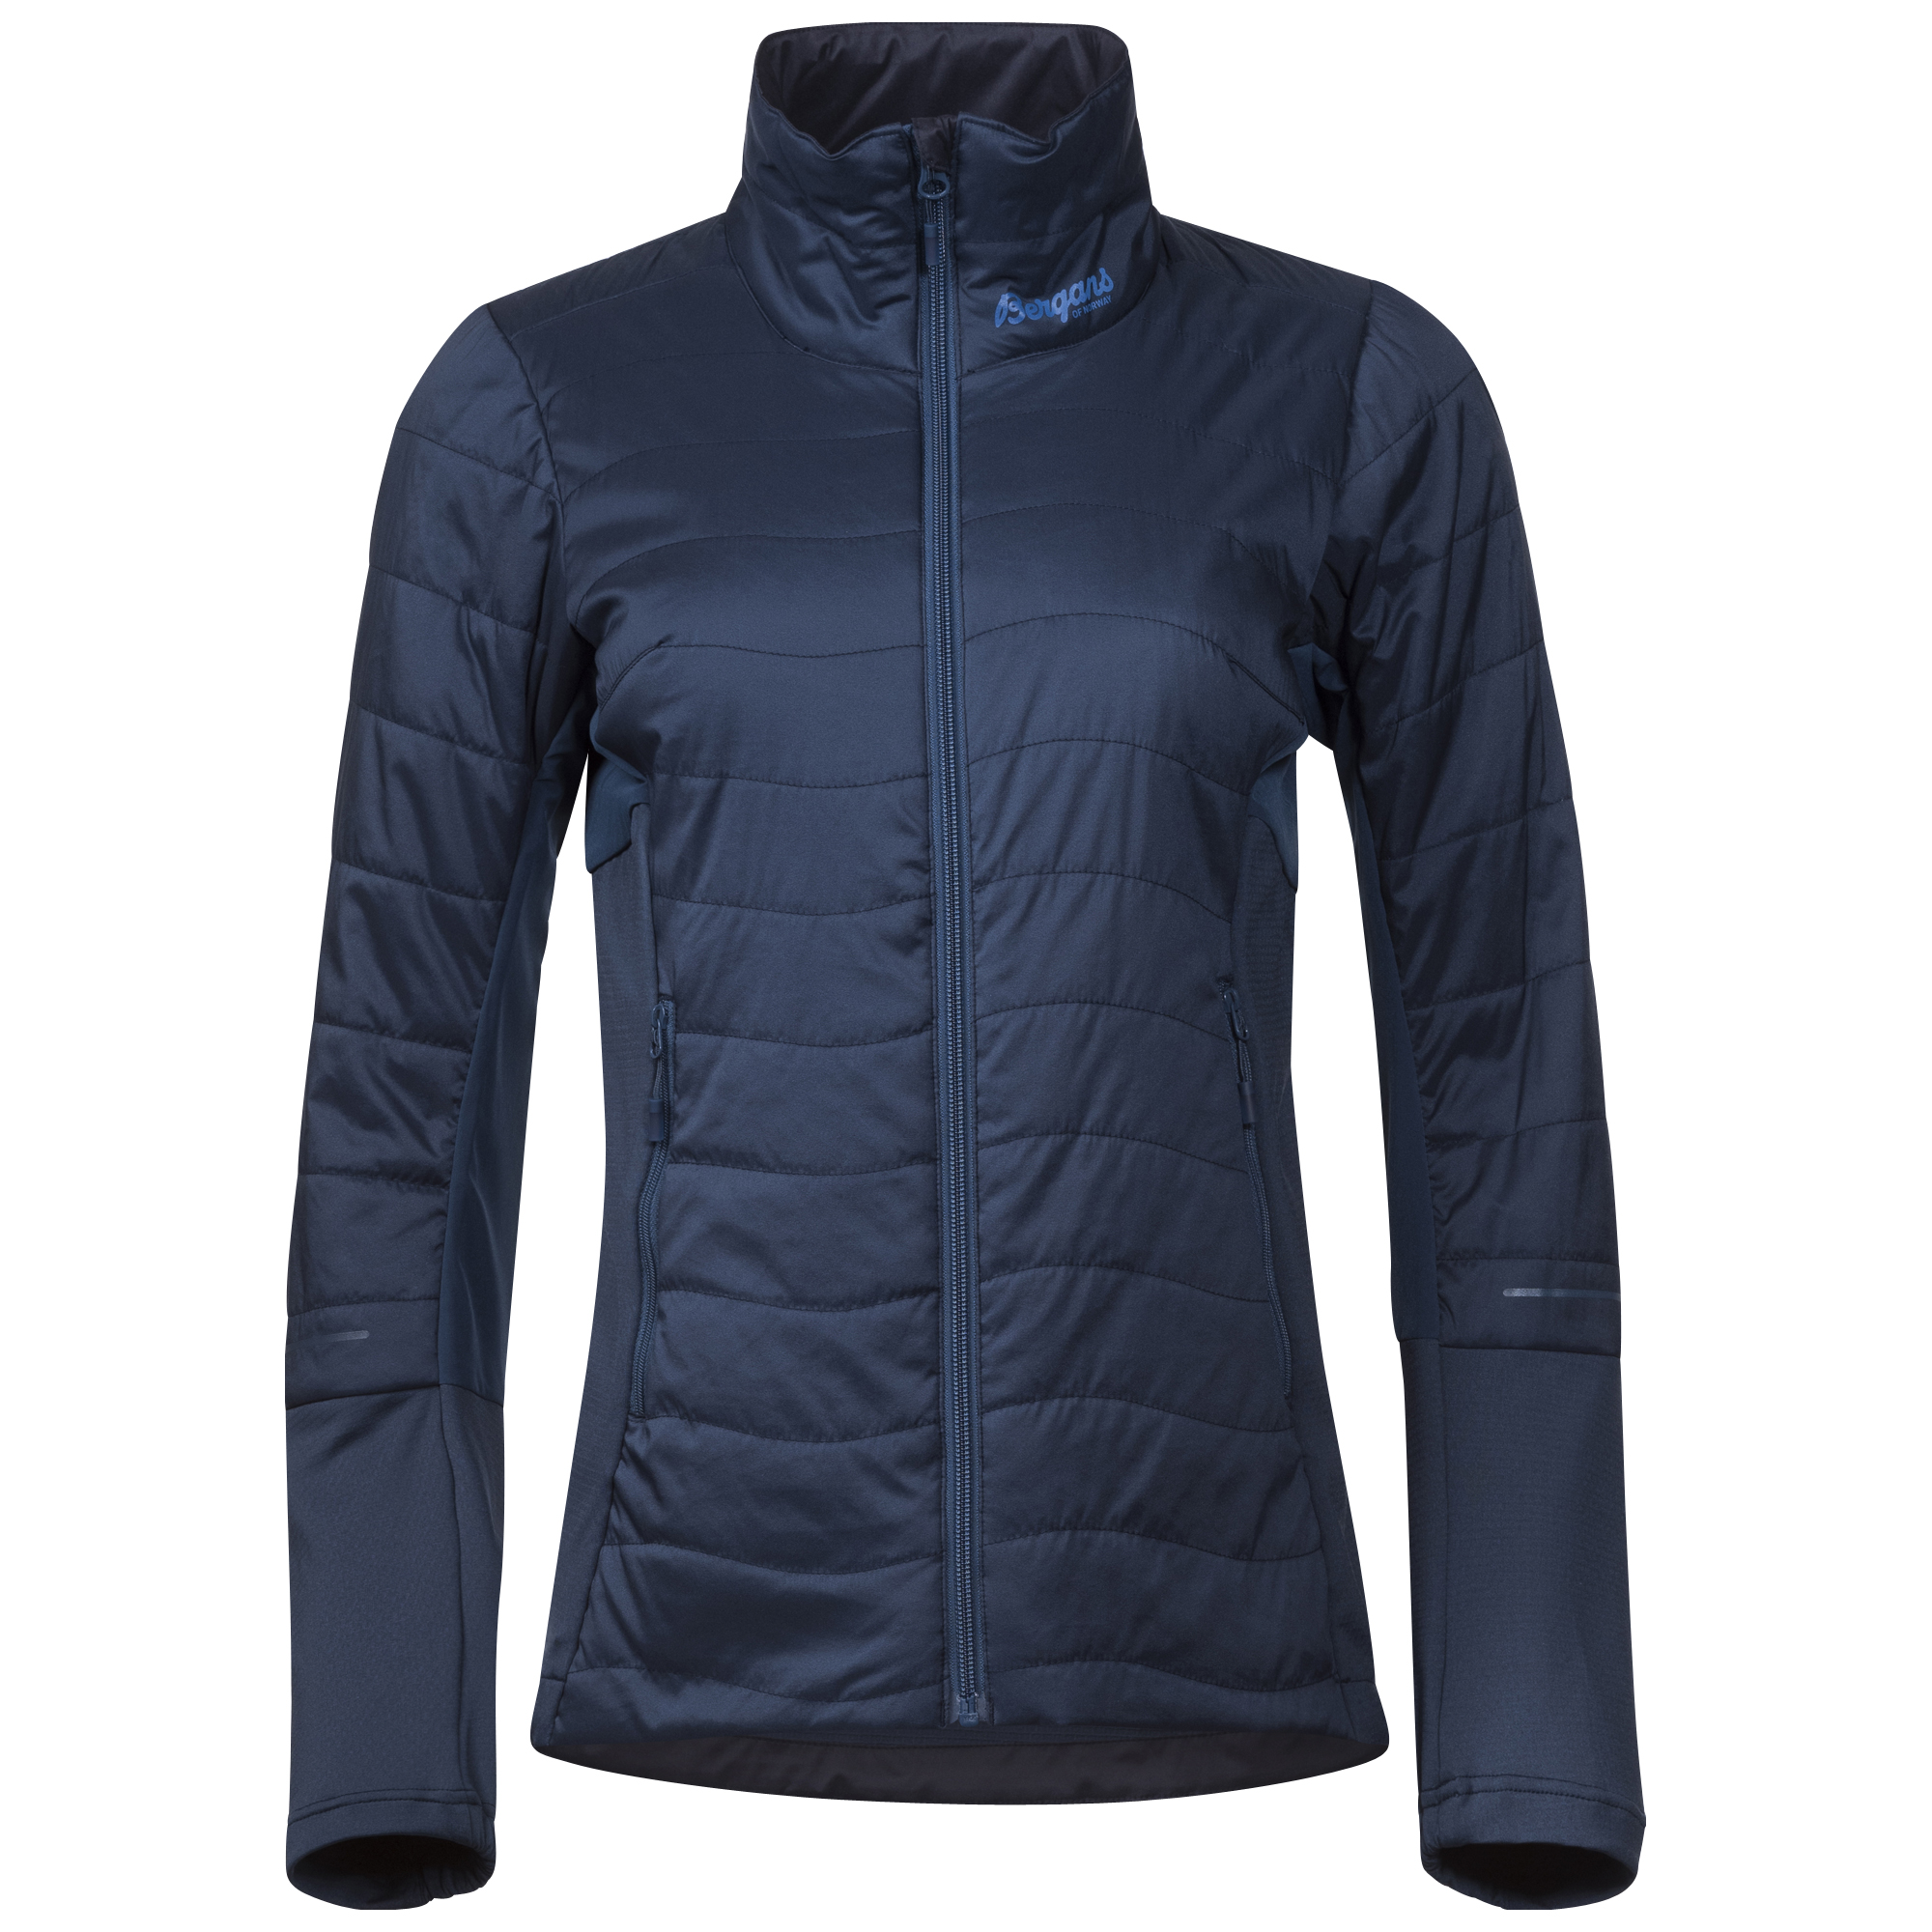 Fløyen Insulated Jacket Light Insulated Insulated Light W Jacket Fløyen Light W Fløyen W 7bgyf6